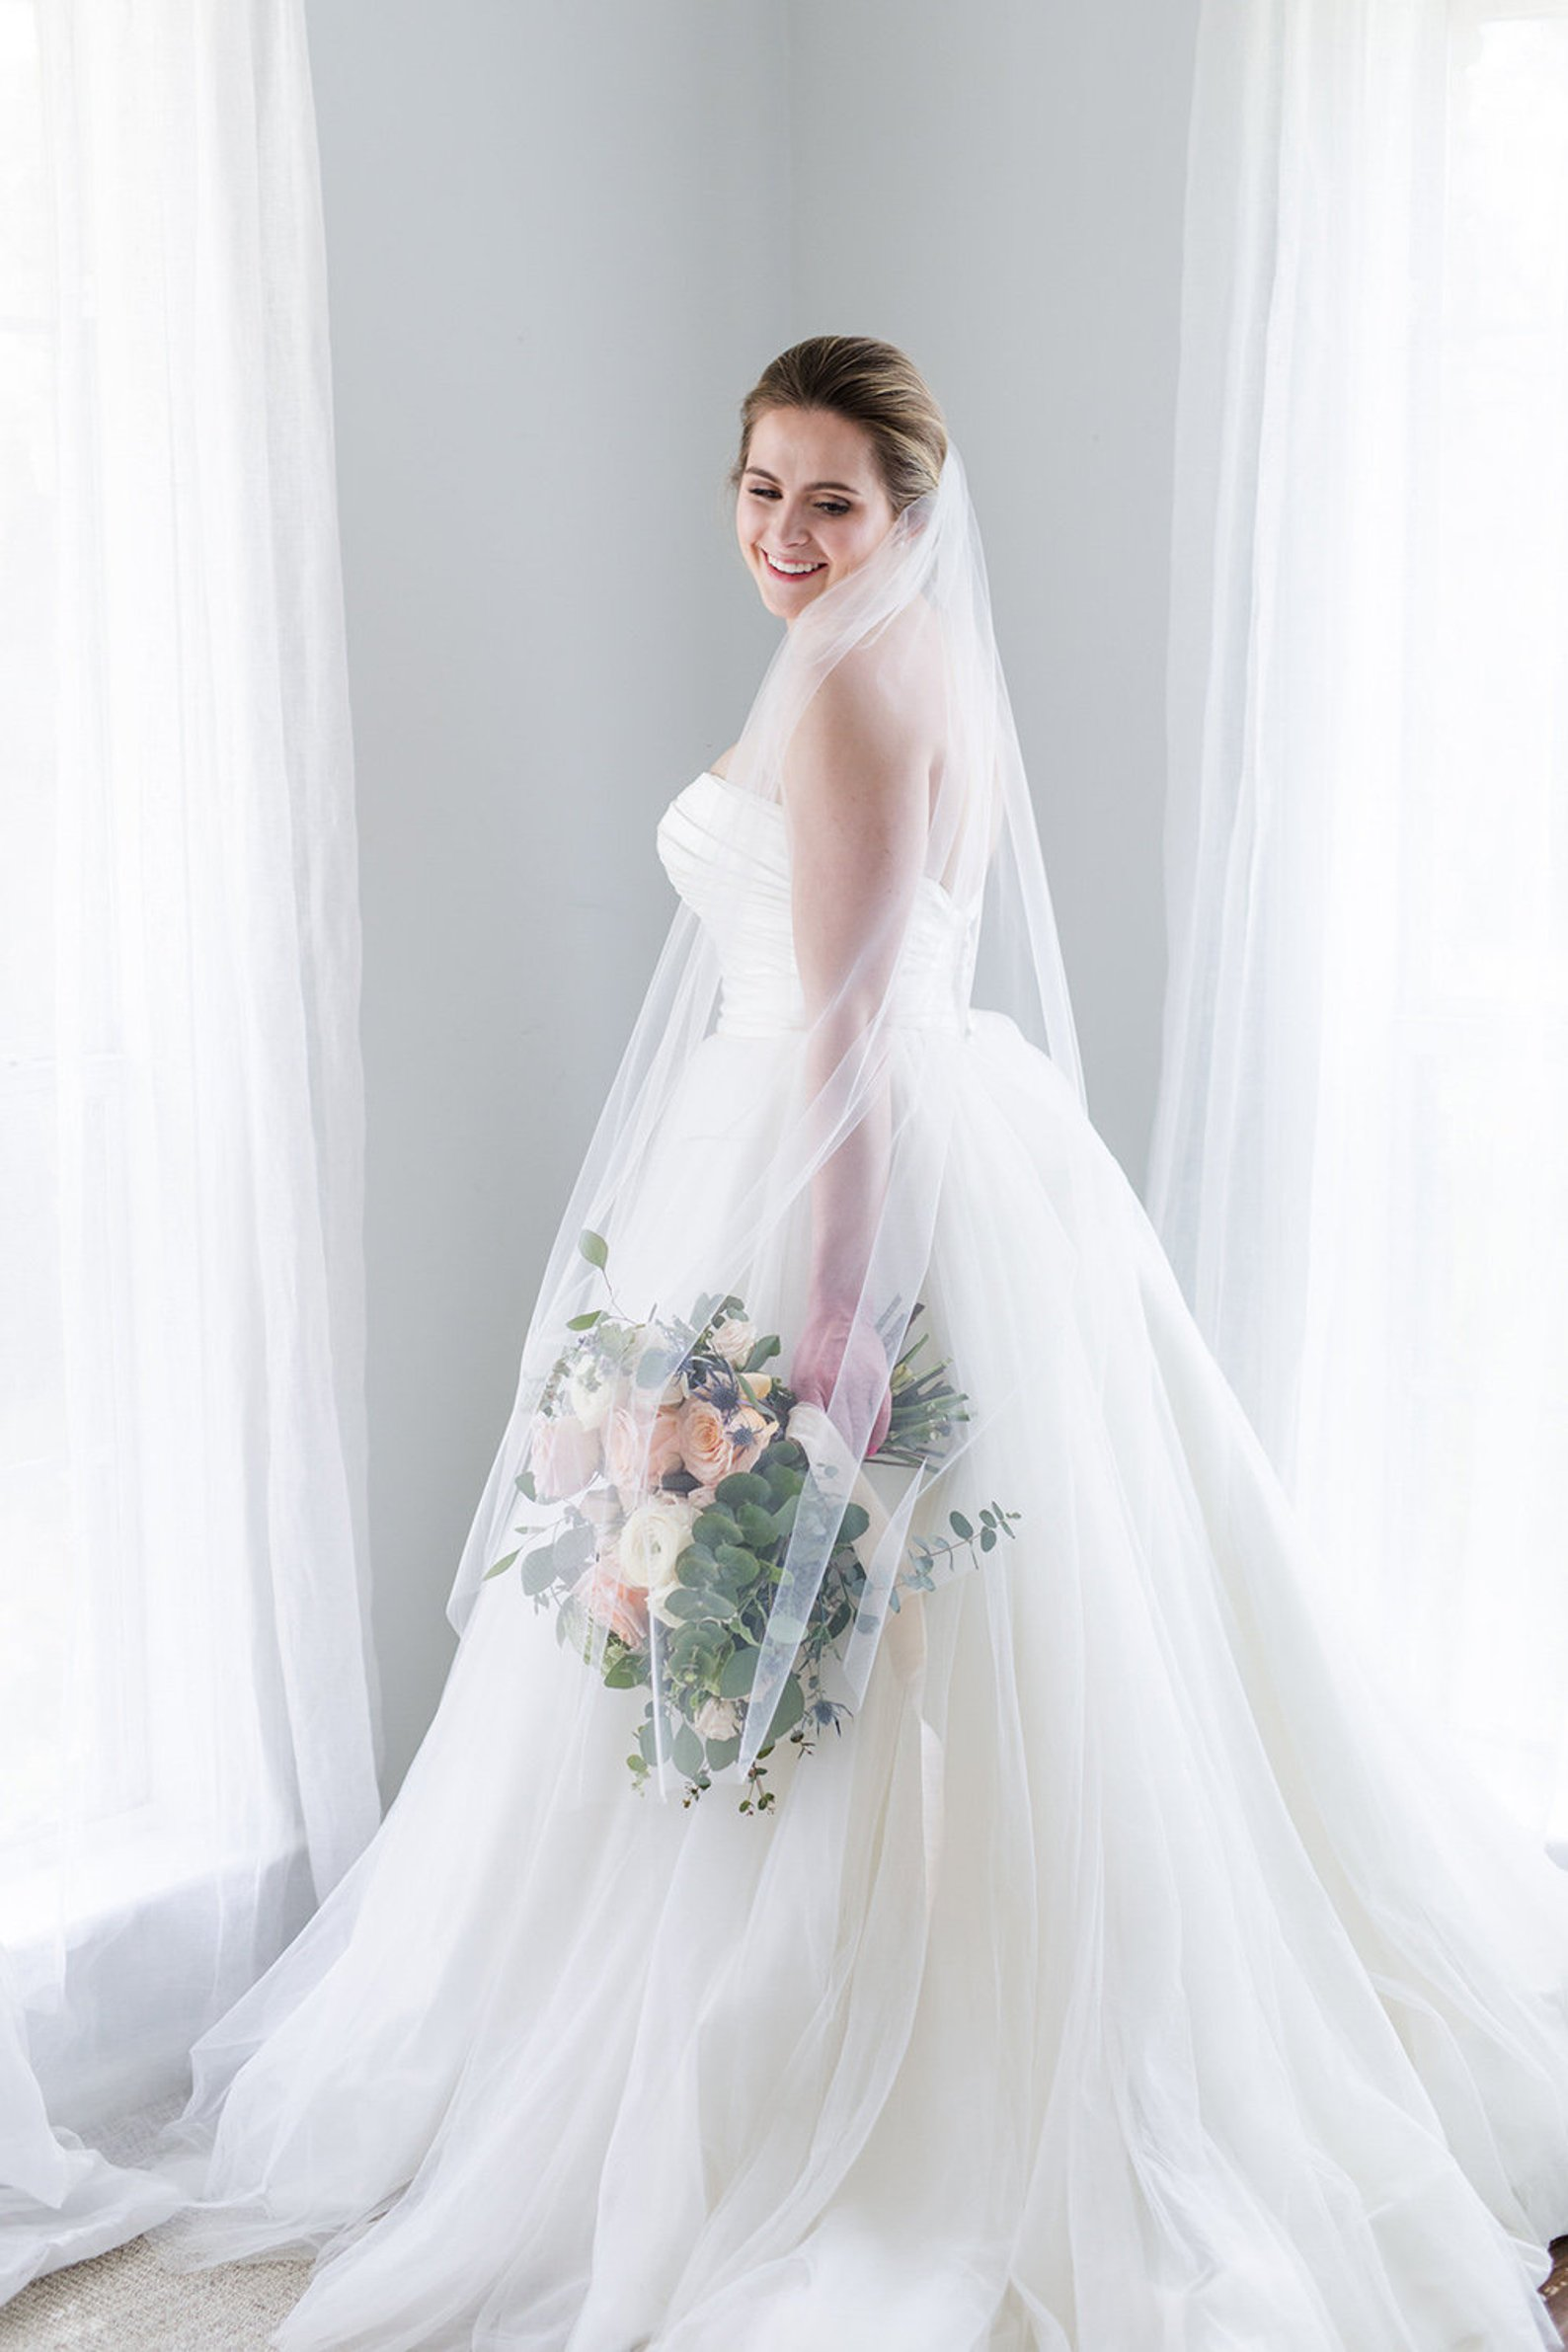 Airy Ballet Veil By Petal and Veil